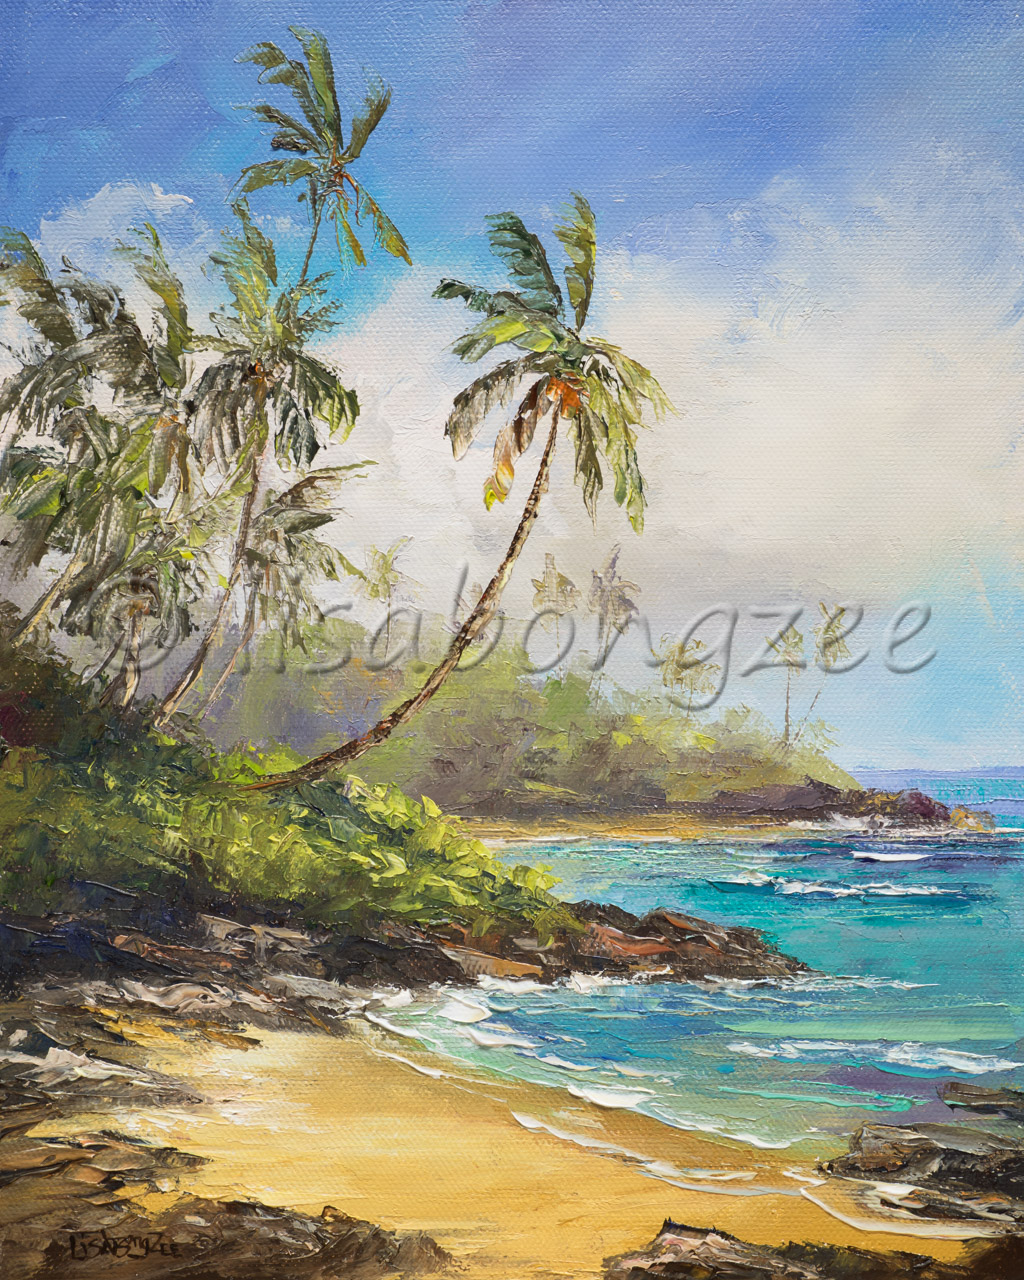 original oil painting of a calm beach lined with rocks, grass, and palm trees